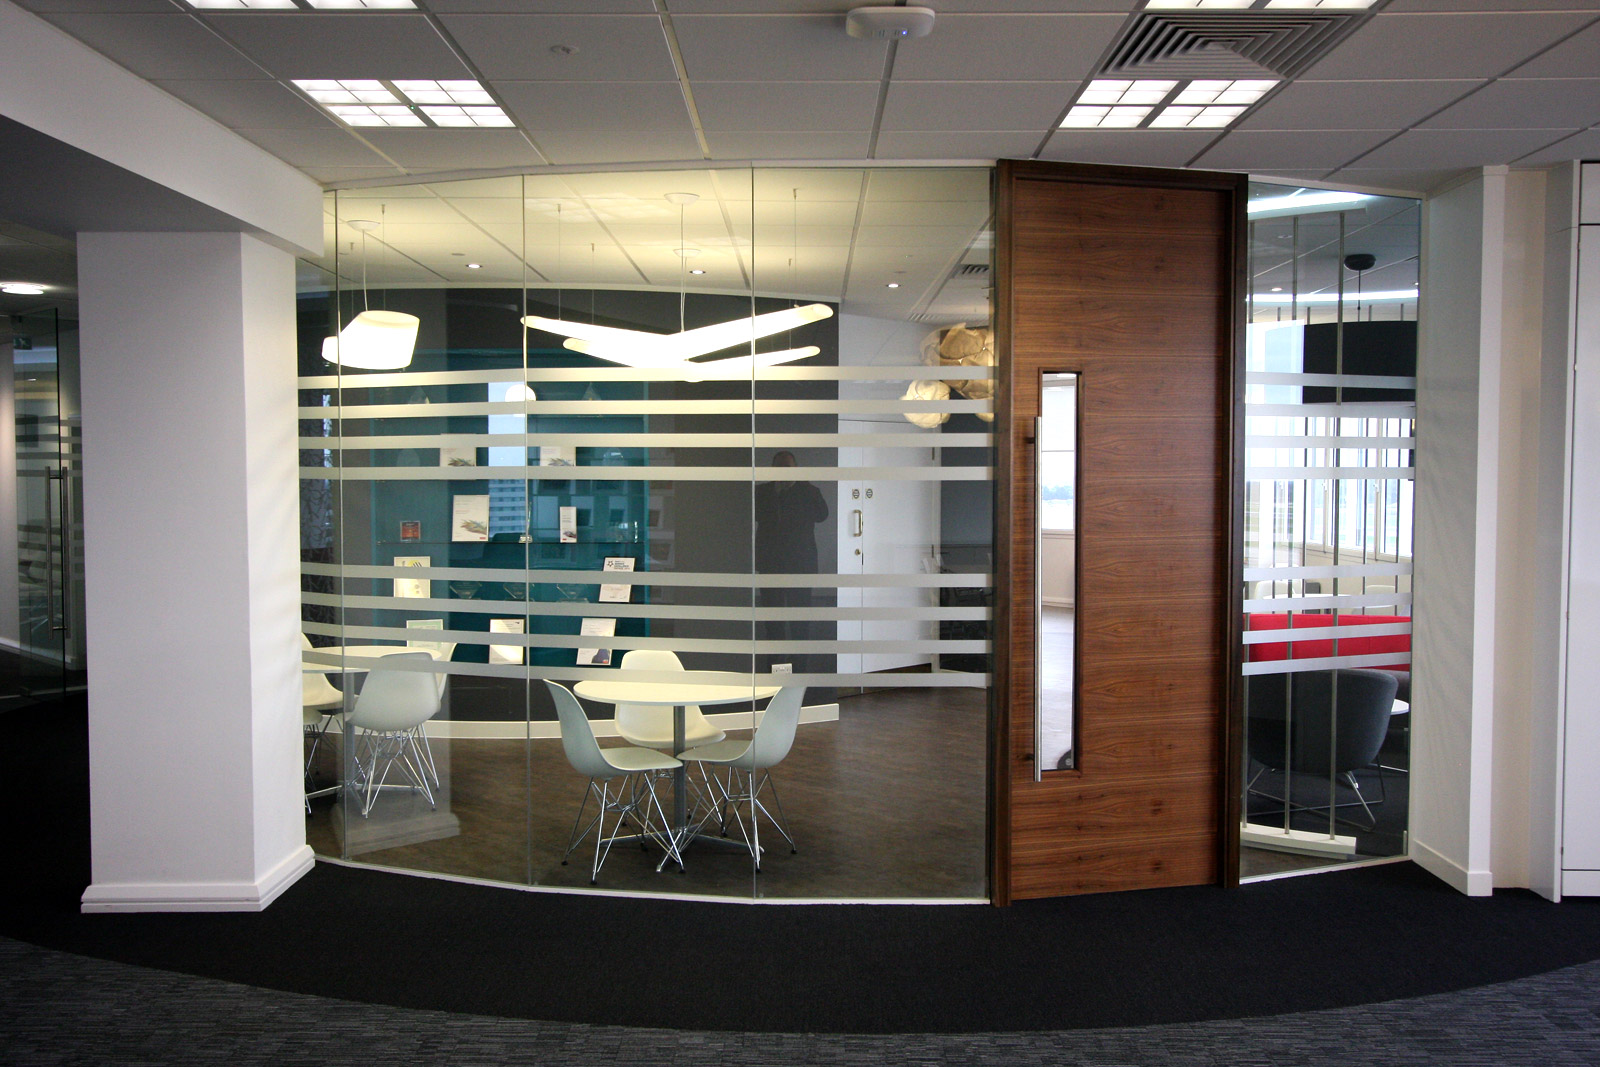 Making The Most Of Small Office Spaces With Glass Partitioning